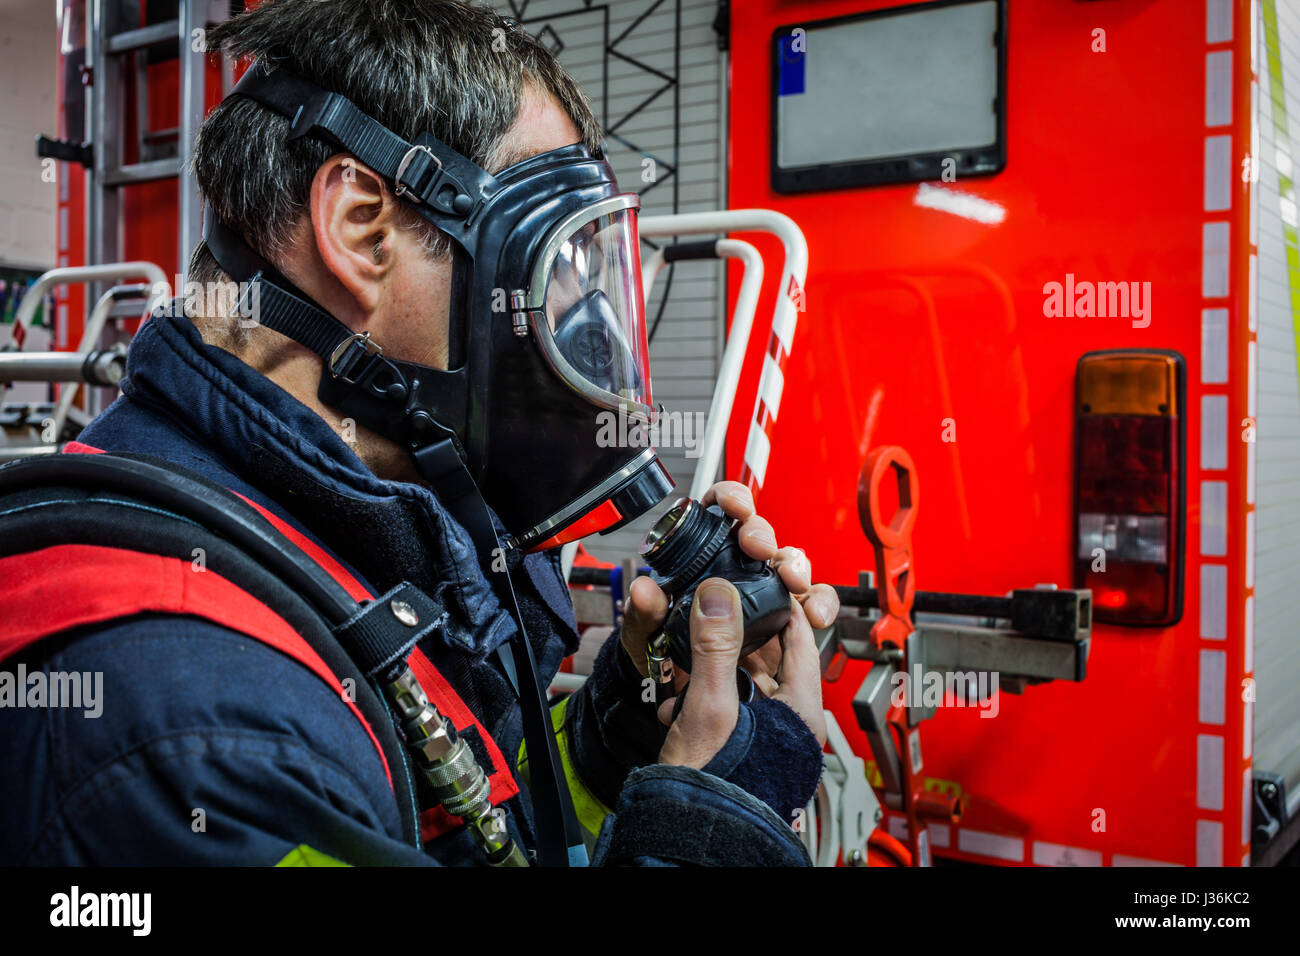 Firefighter in action with respiratory protection mask - HDR - Stock Image